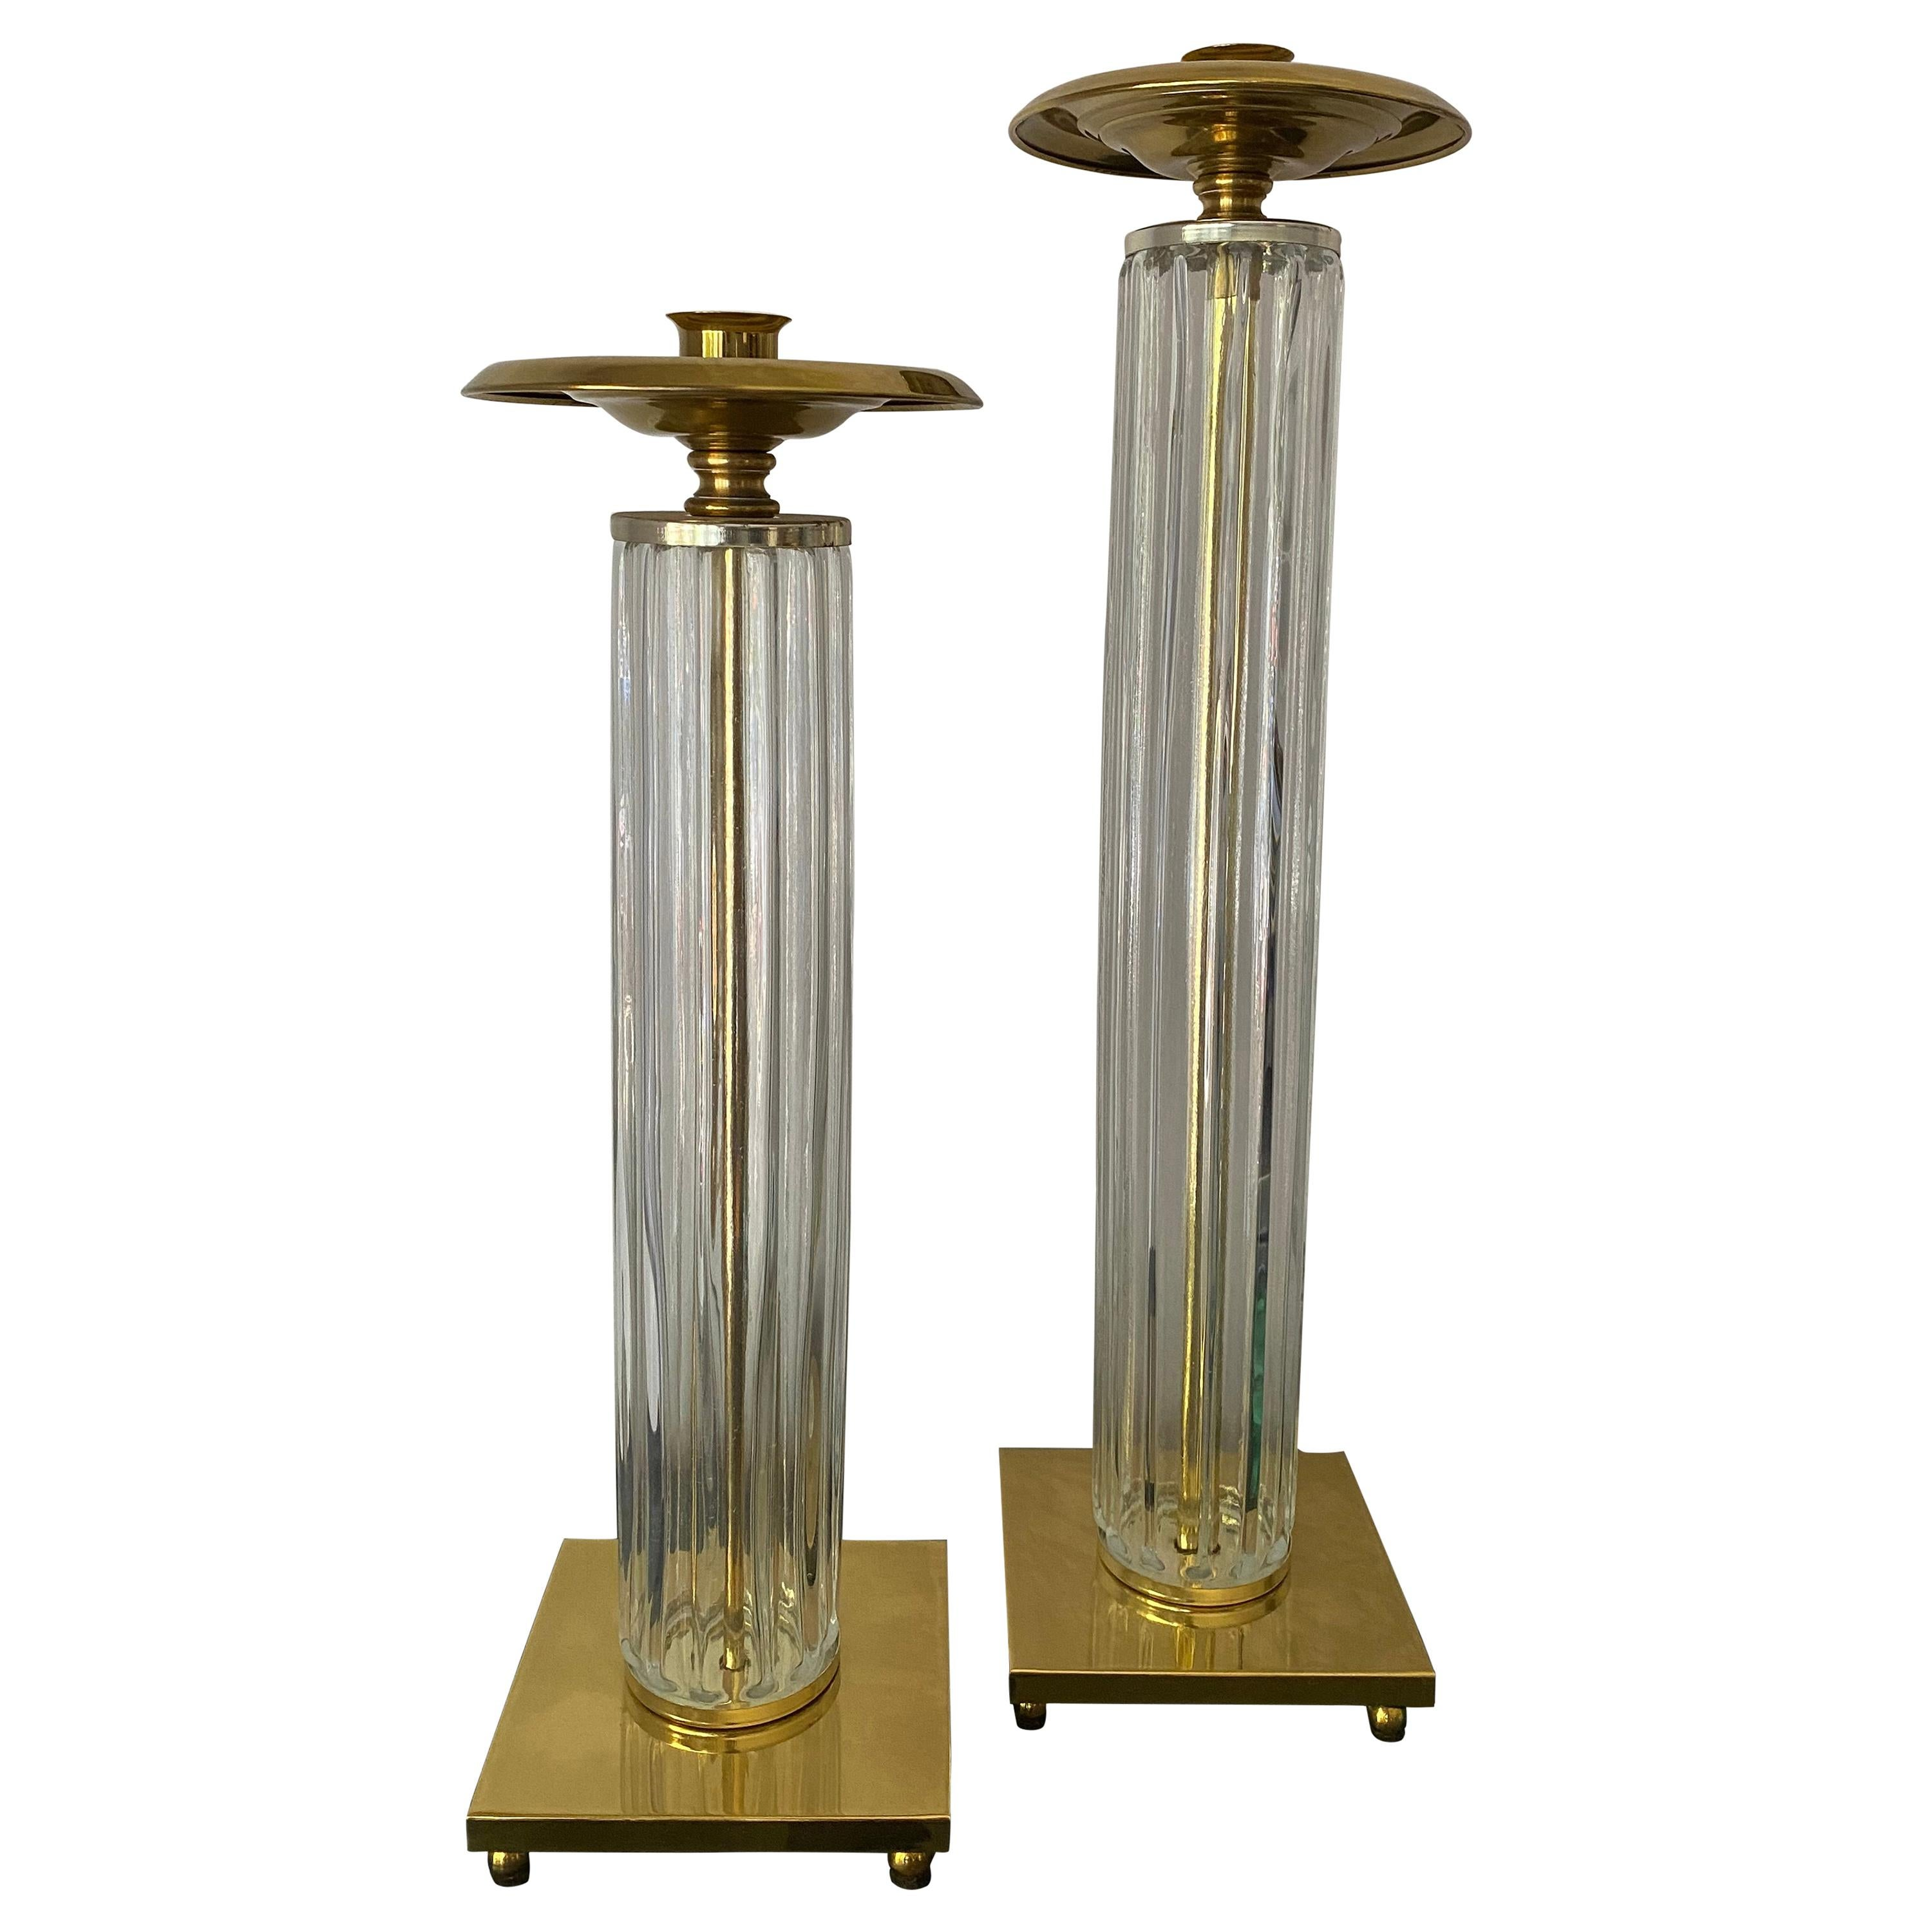 Pair of Brass and Glass Candleholders